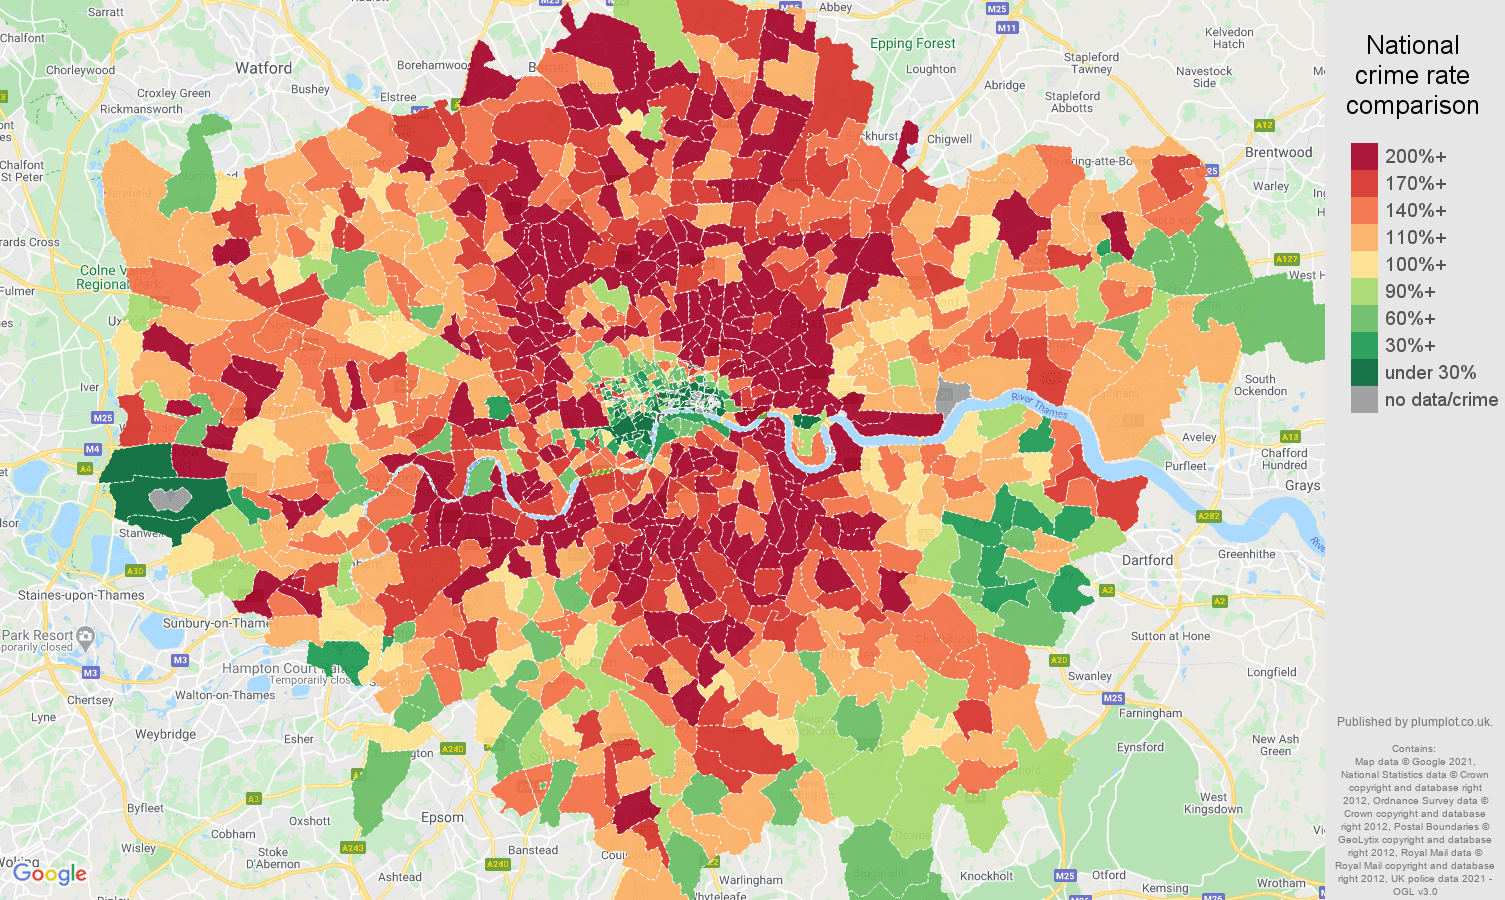 London burglary crime rate comparison map